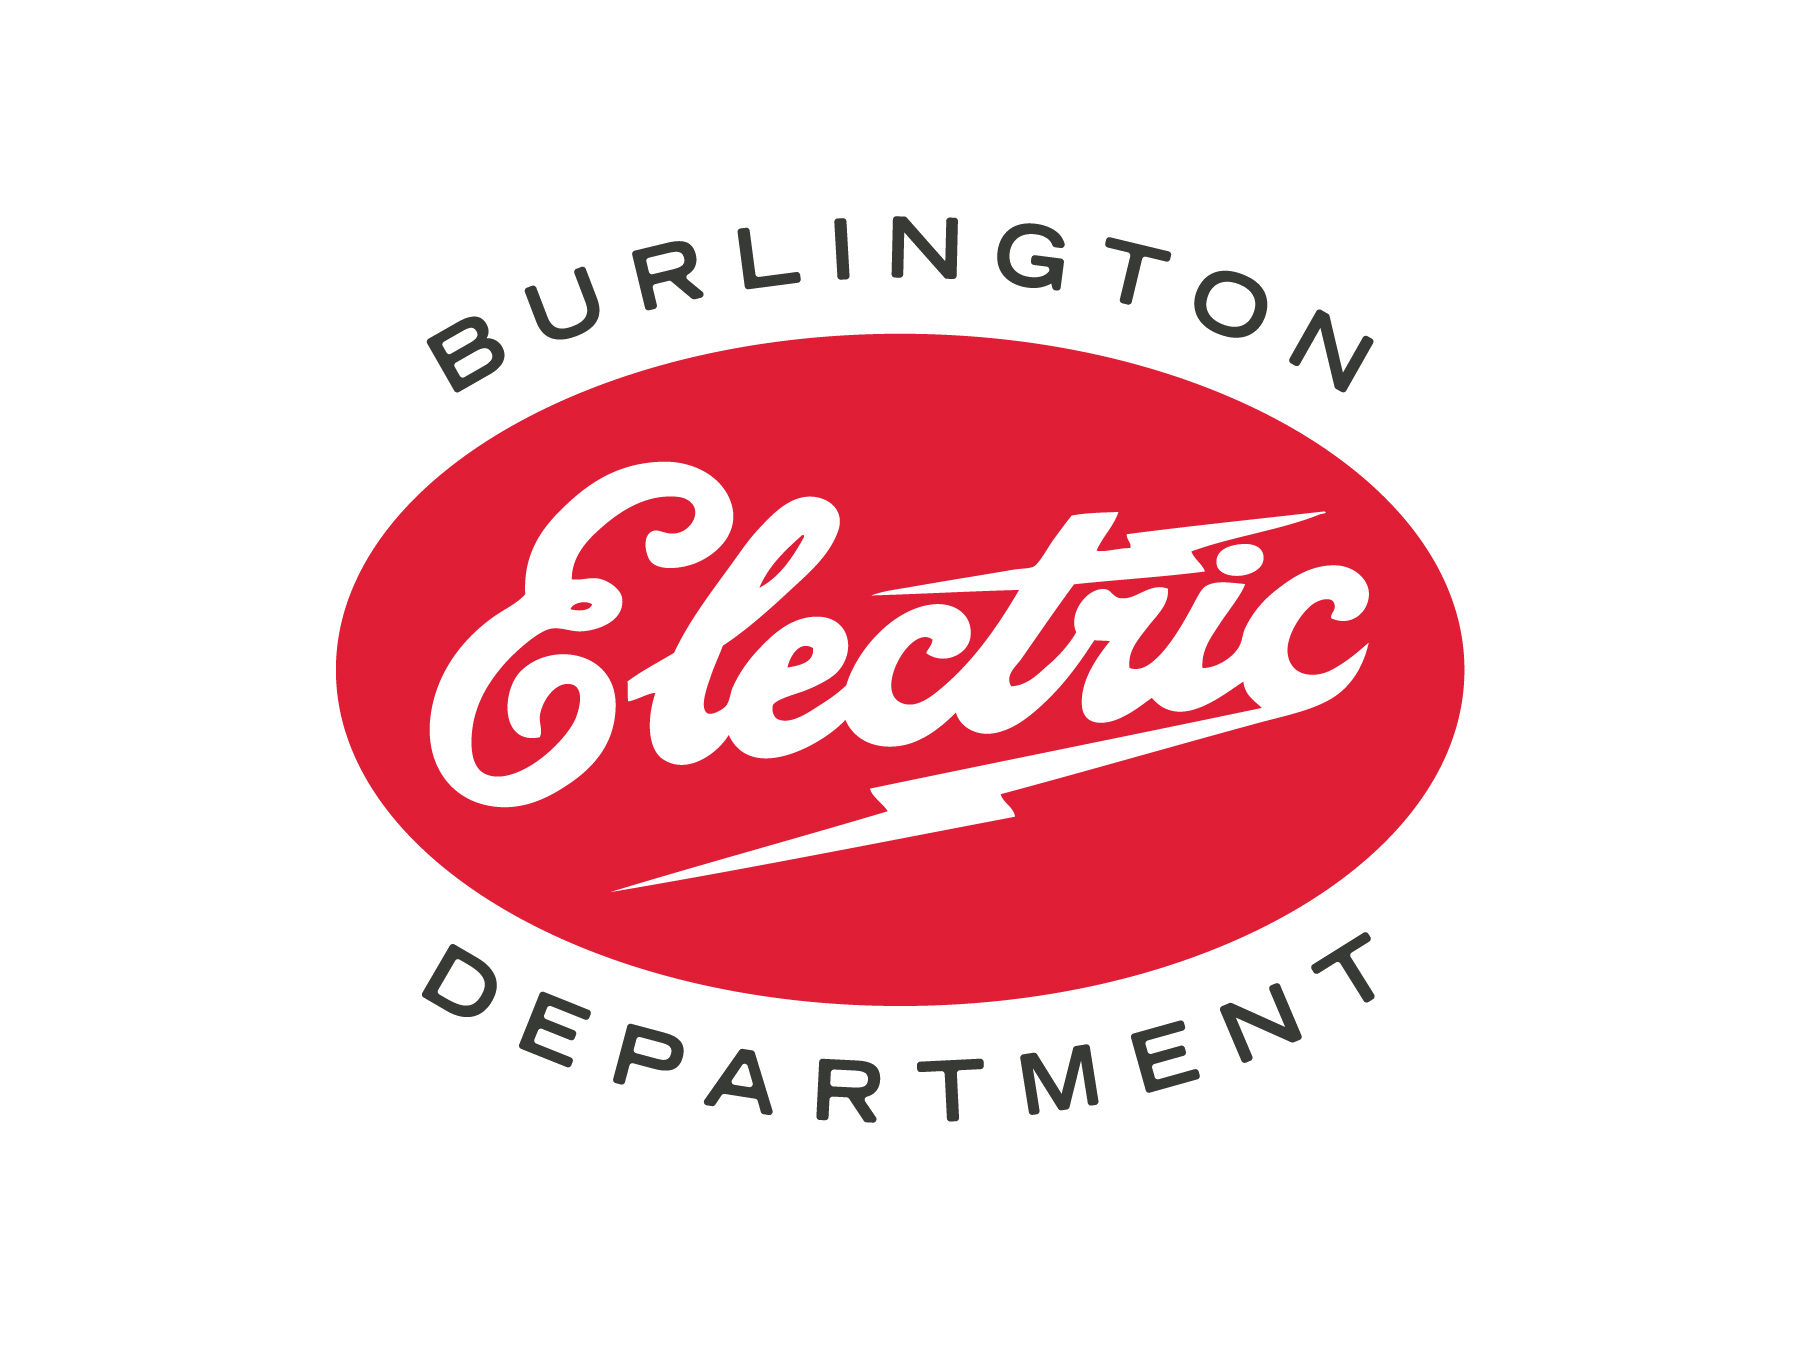 burlington-electric-department-logo.jpg